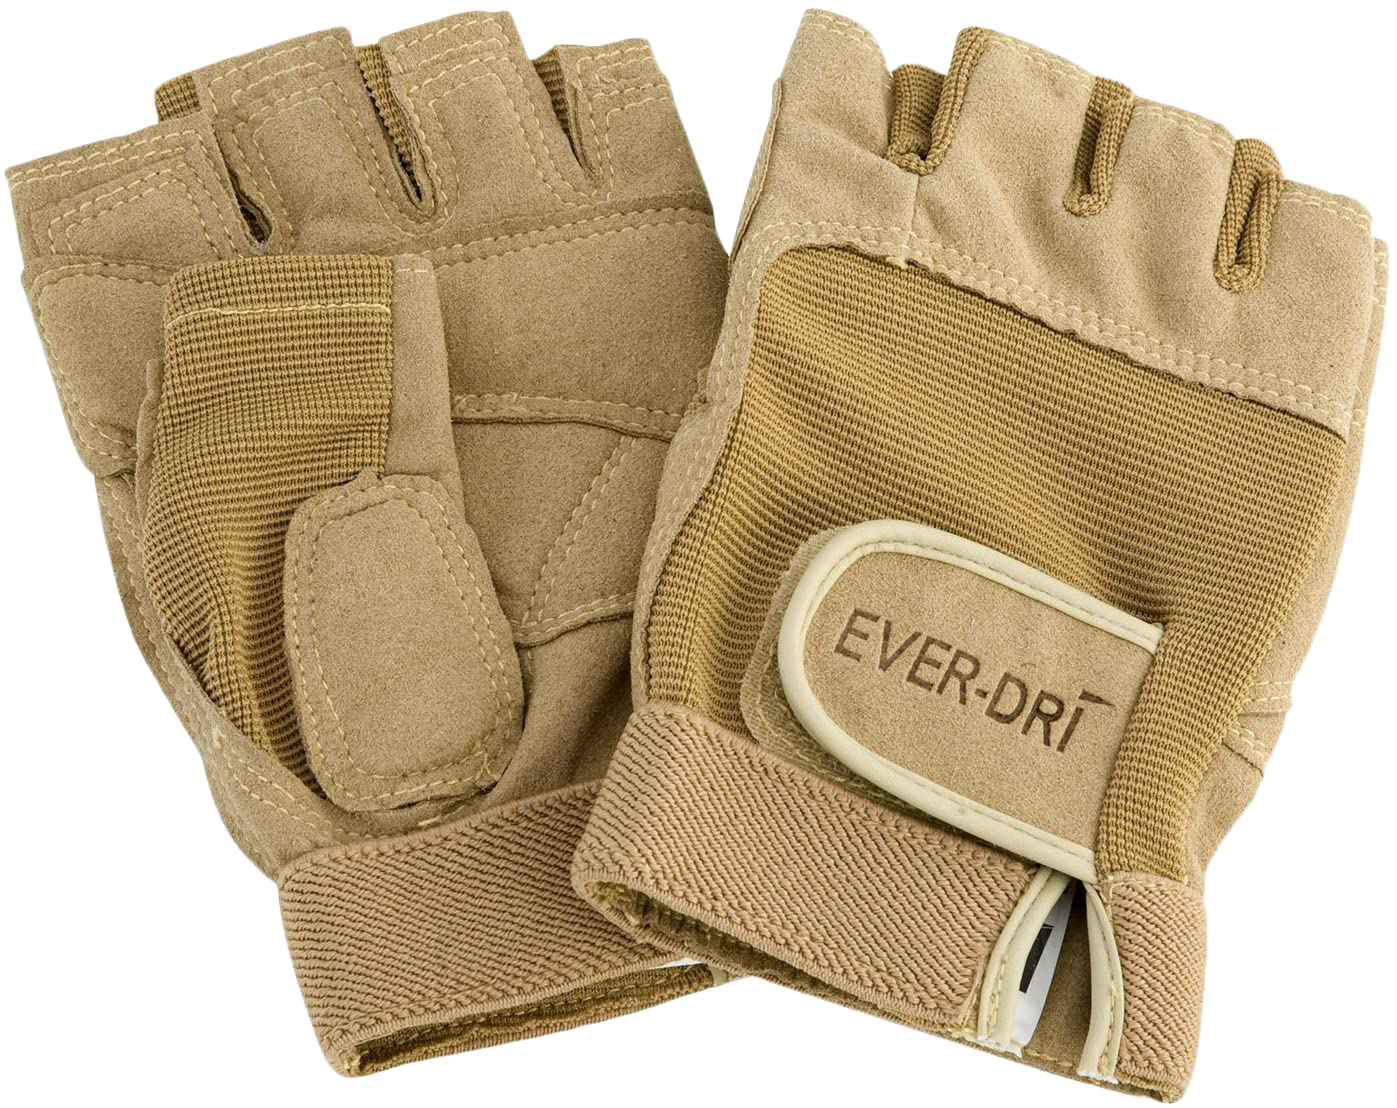 Ever-Dri Performance Gloves by DSI - High Durability Gaming Gloves